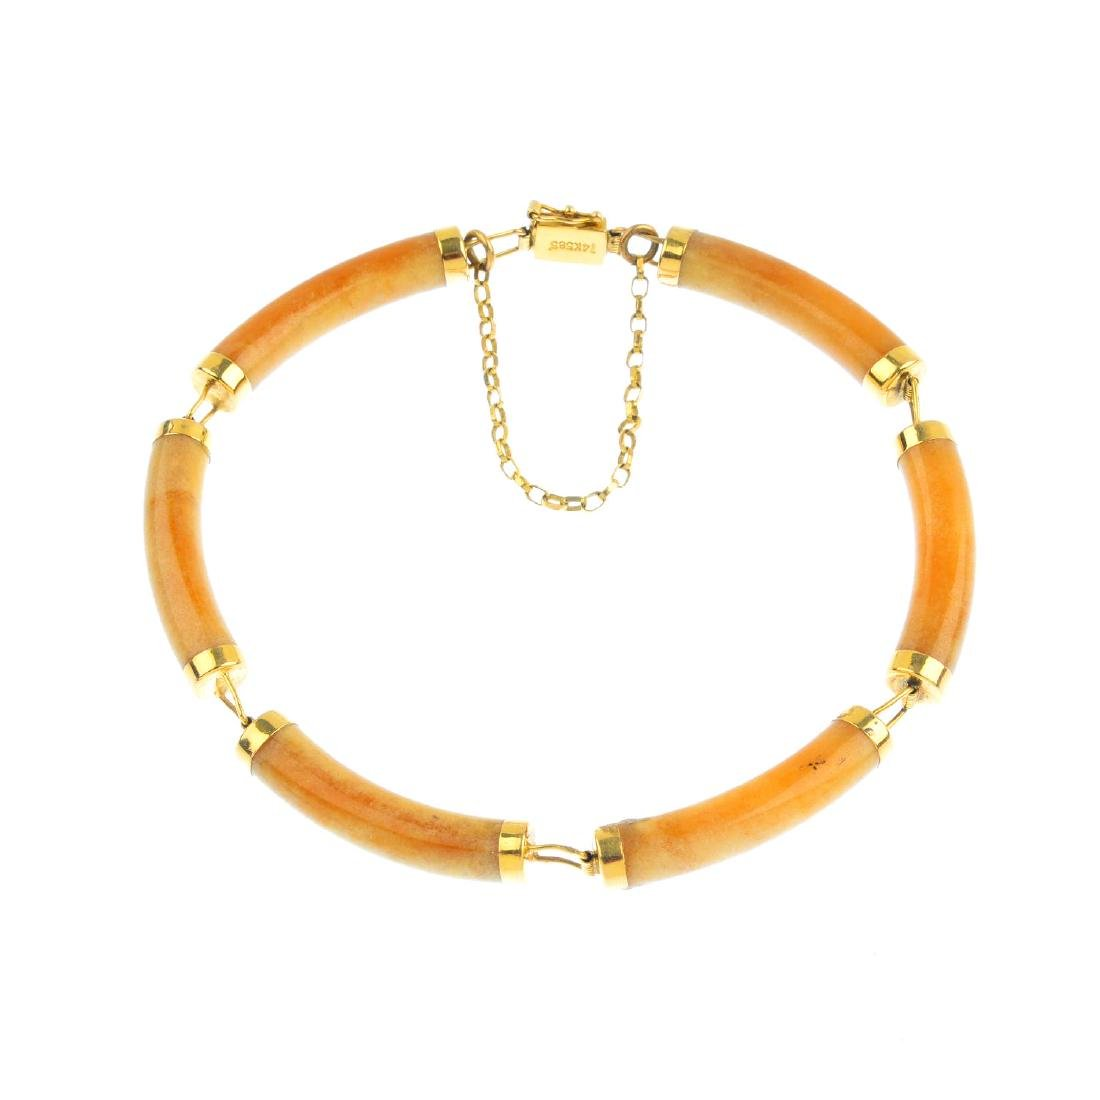 An agate bracelet. Designed as a series of agate curved